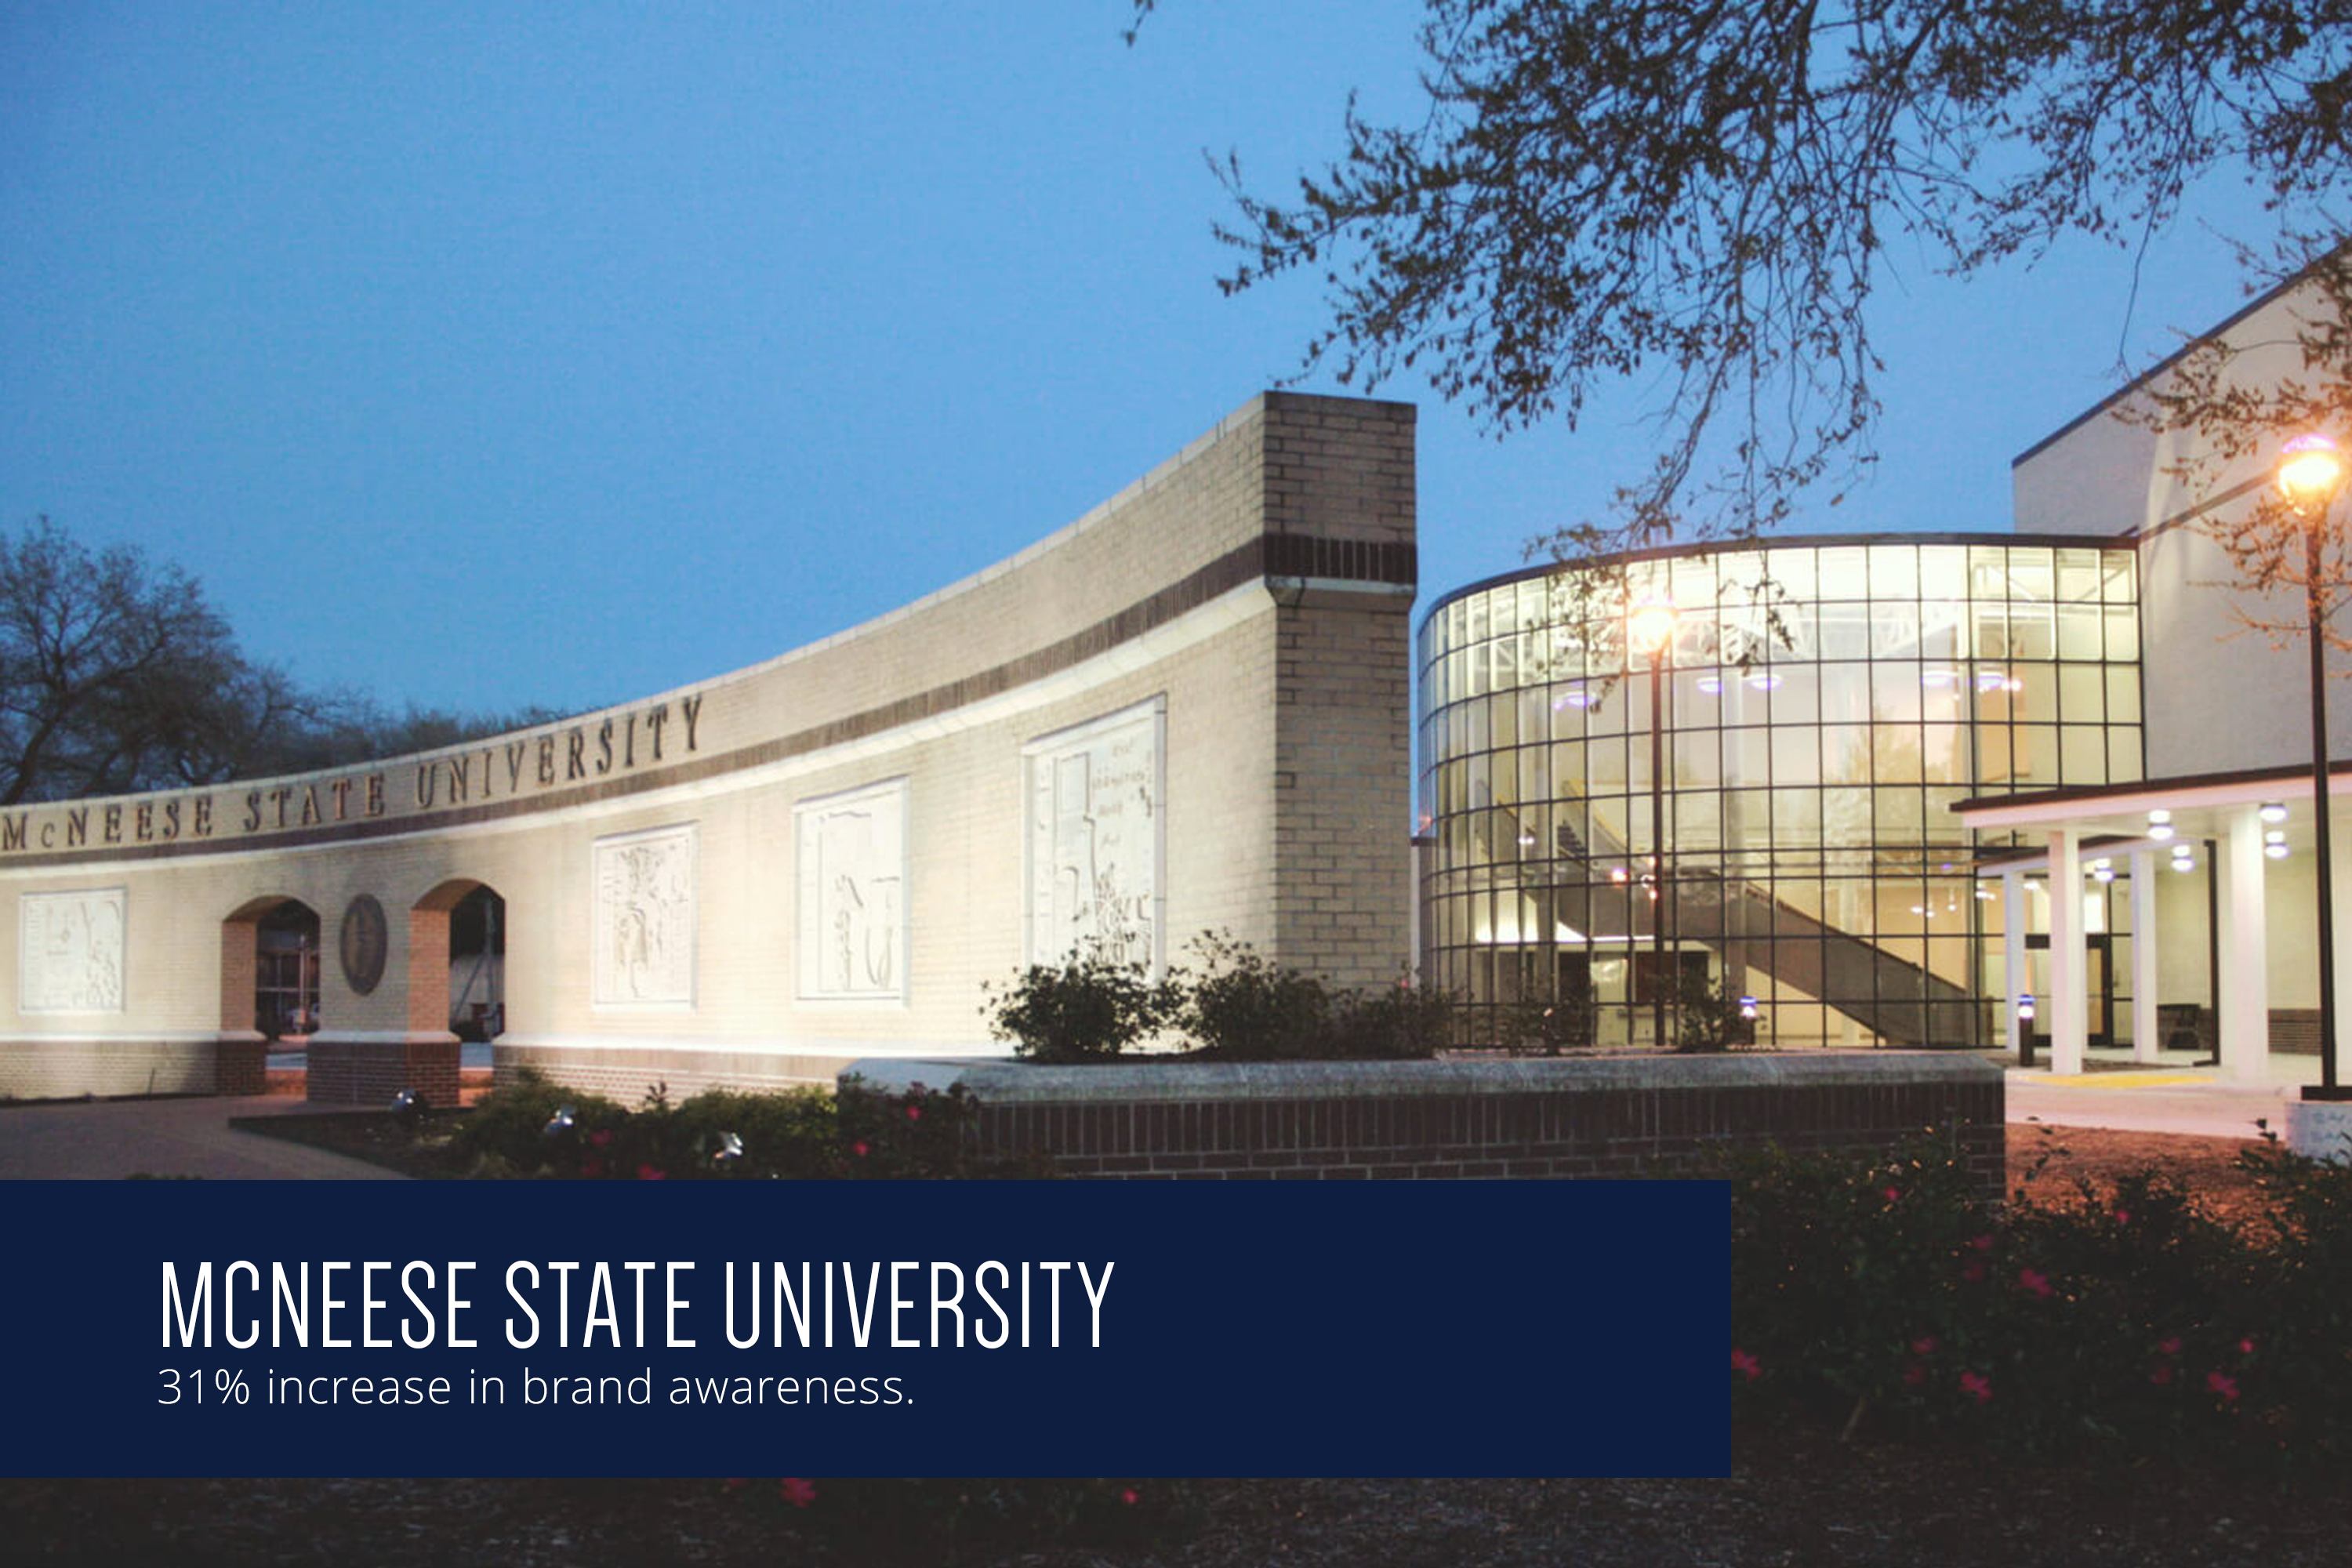 McNeese State University boosts brand awareness by 31%